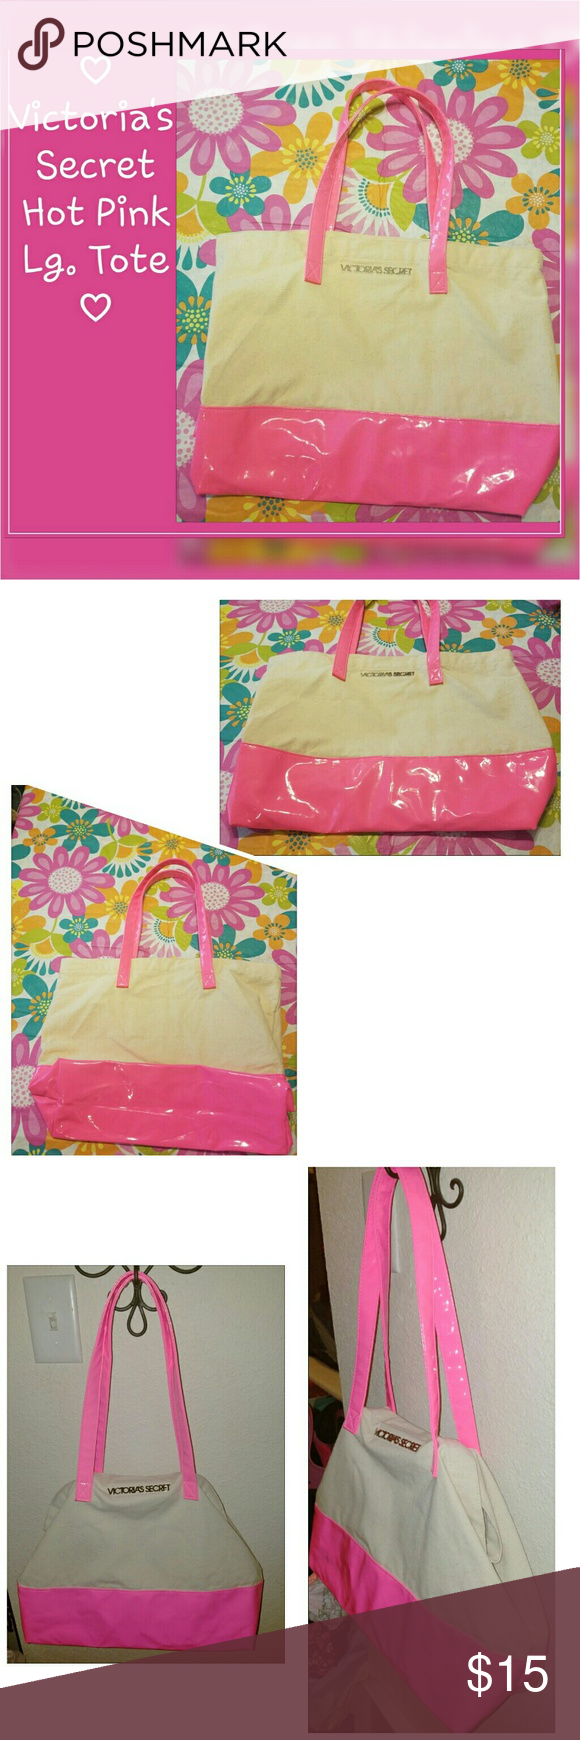 "Victoria's Secret Large Hot Pink Tote ~ Beach Bag ? Gorgeous bright/hot pink (similar to a hot bubblegum color) Tote bag from Victoria's Secret. Natural cream color background and inside, pink straps and bottom.   Very sturdy, great for the beach, toting things back & forth and more!   I used this bag once after getting it from Victoria's Secret, in almost perfect condition- has one or two tiny black spots on bottom of base.  Measures appx. 14"" tall, 19.5"" wide and is 5.75"" wide across…"